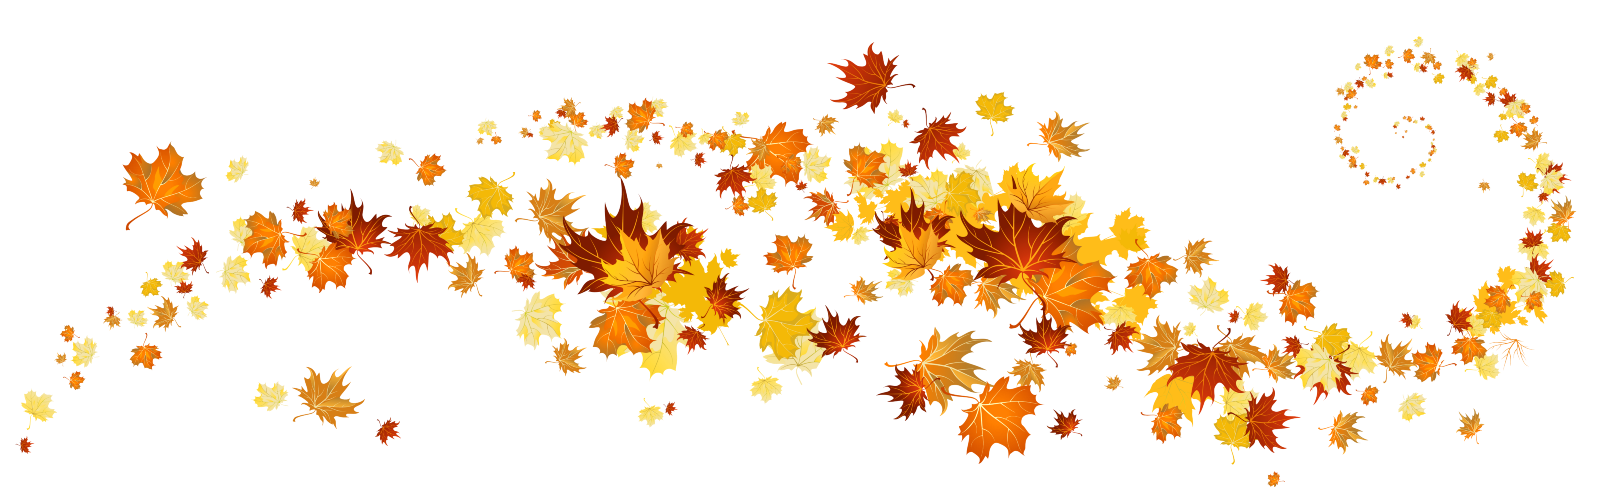 Blowing Leaves Png images collection for free download.